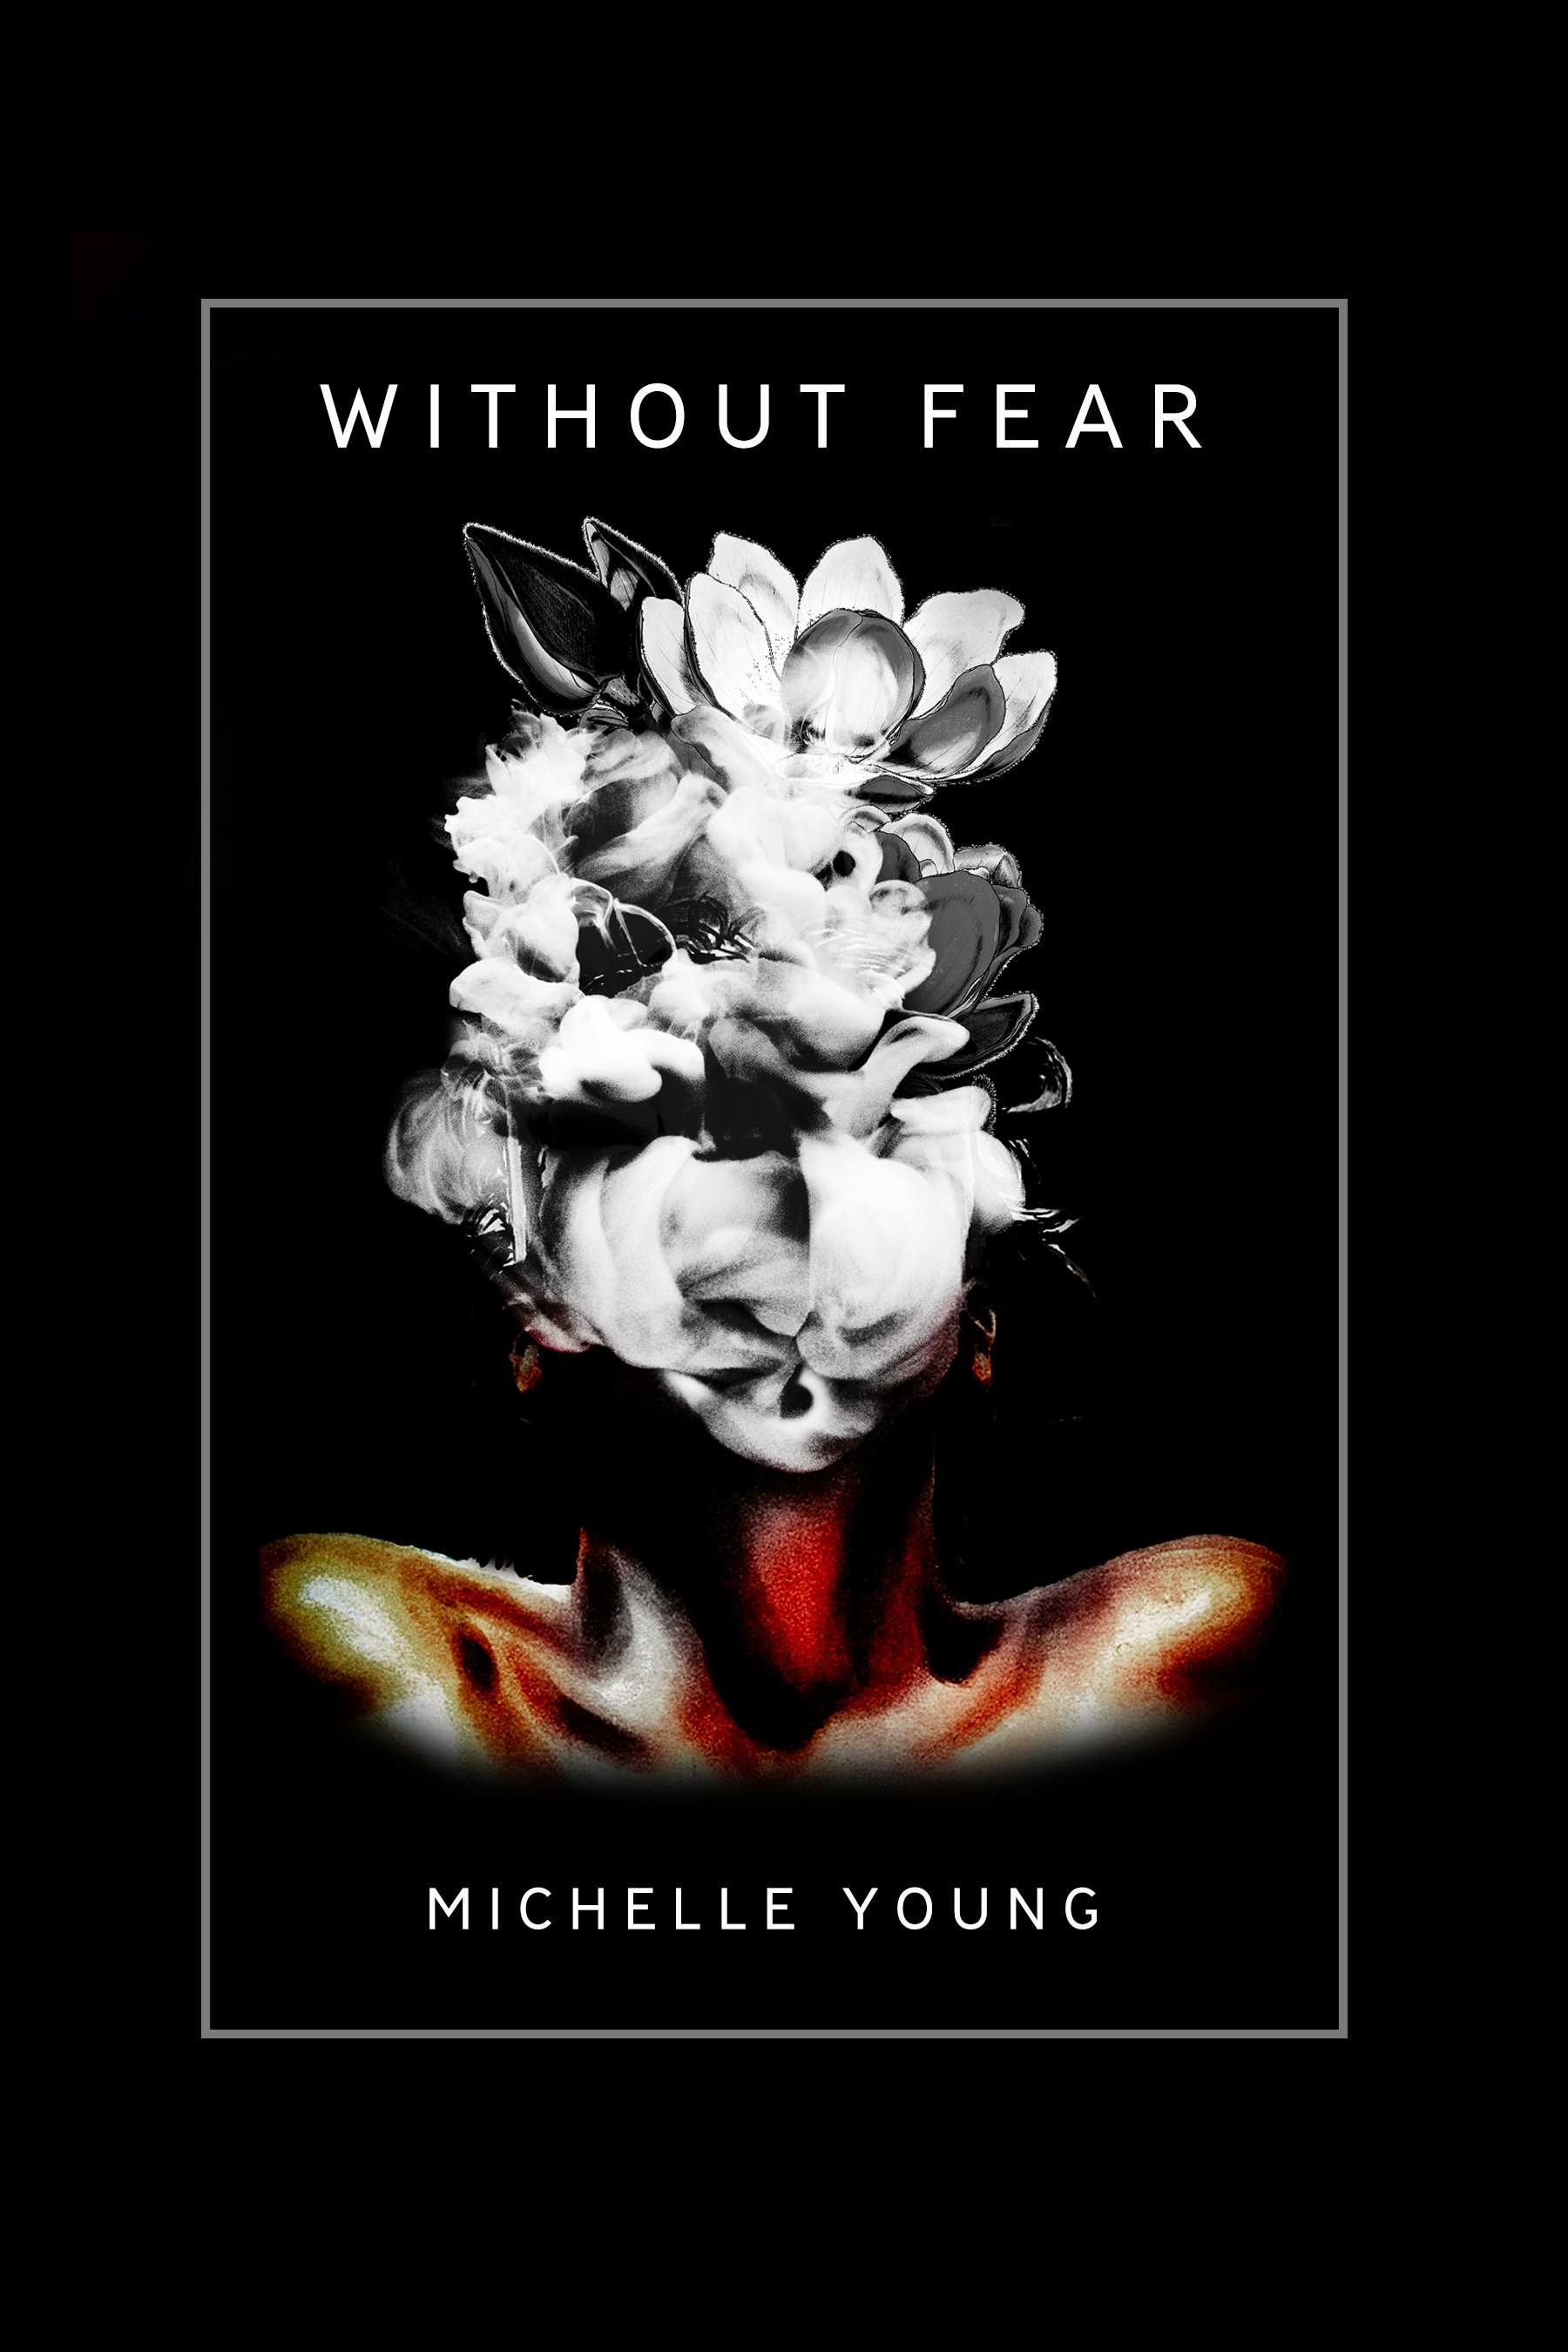 Without Fear - Without Fear is a book of prose and poetry about the up and down journey of healing. It's about transforming your pain into something beautiful. Without Fear helps readers see that their struggles can make them stronger, like a well-tended garden, they can blossom. It's about owning your past, instead of letting it control you.